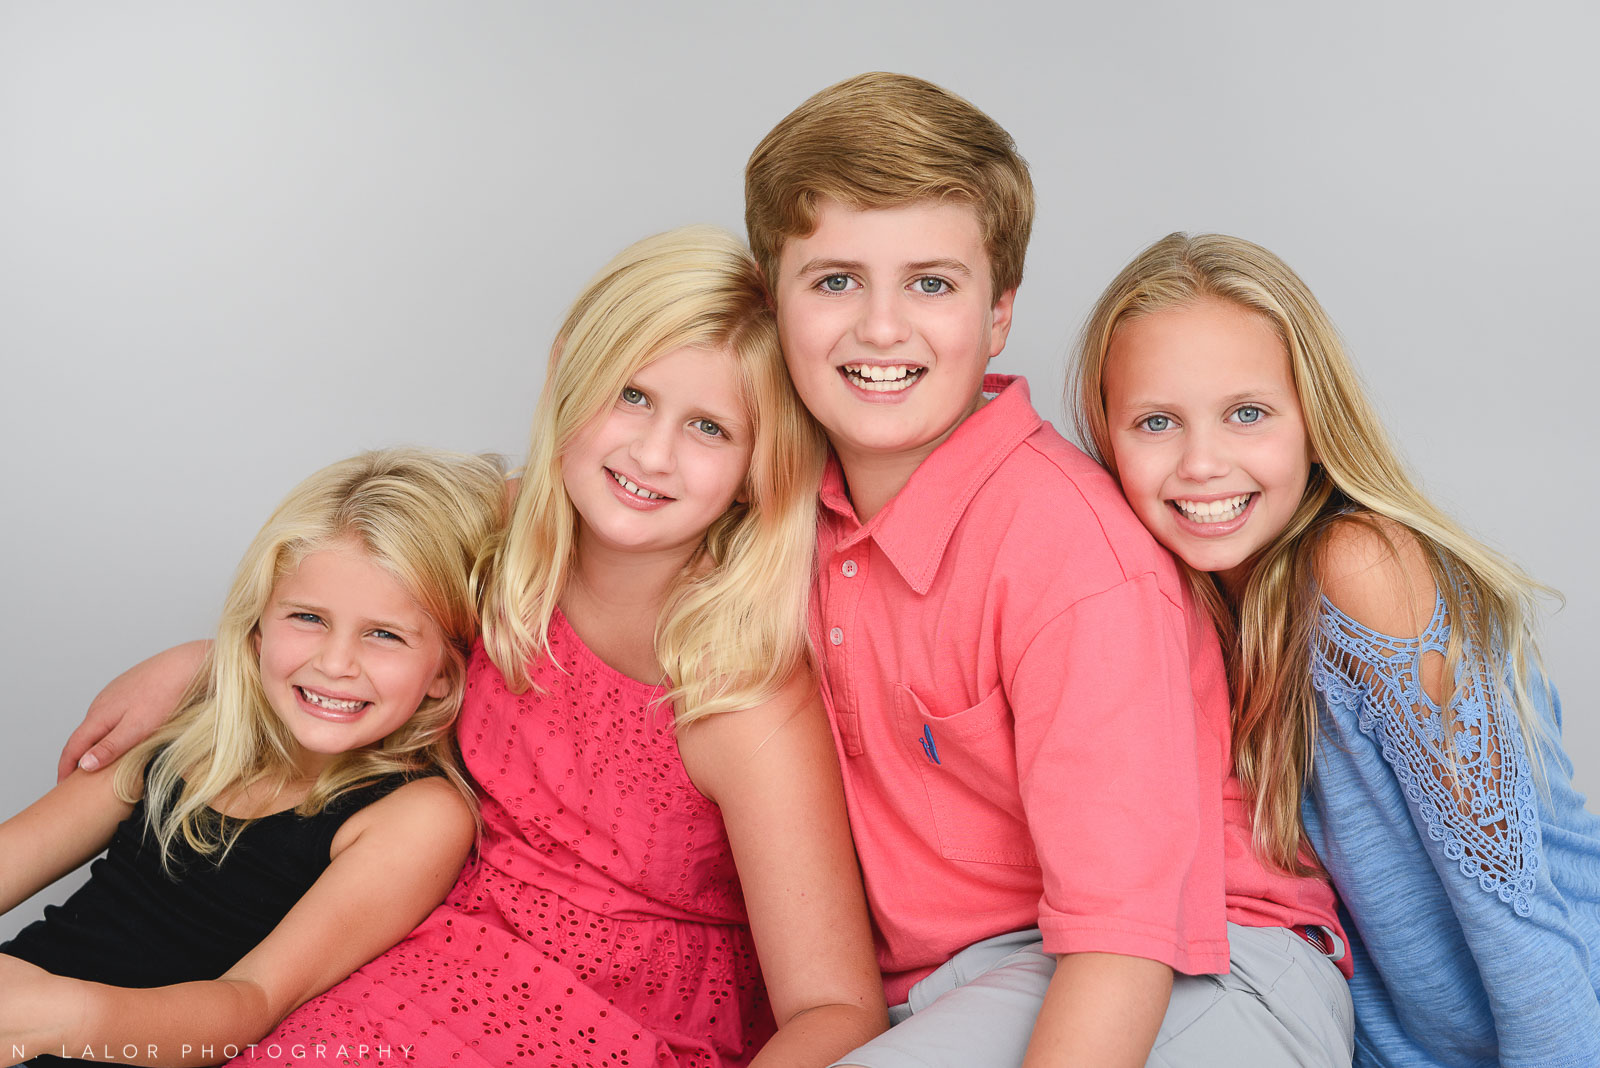 Four kids together. Studio family photo session with N. Lalor Photography in Greenwich, Connecticut.